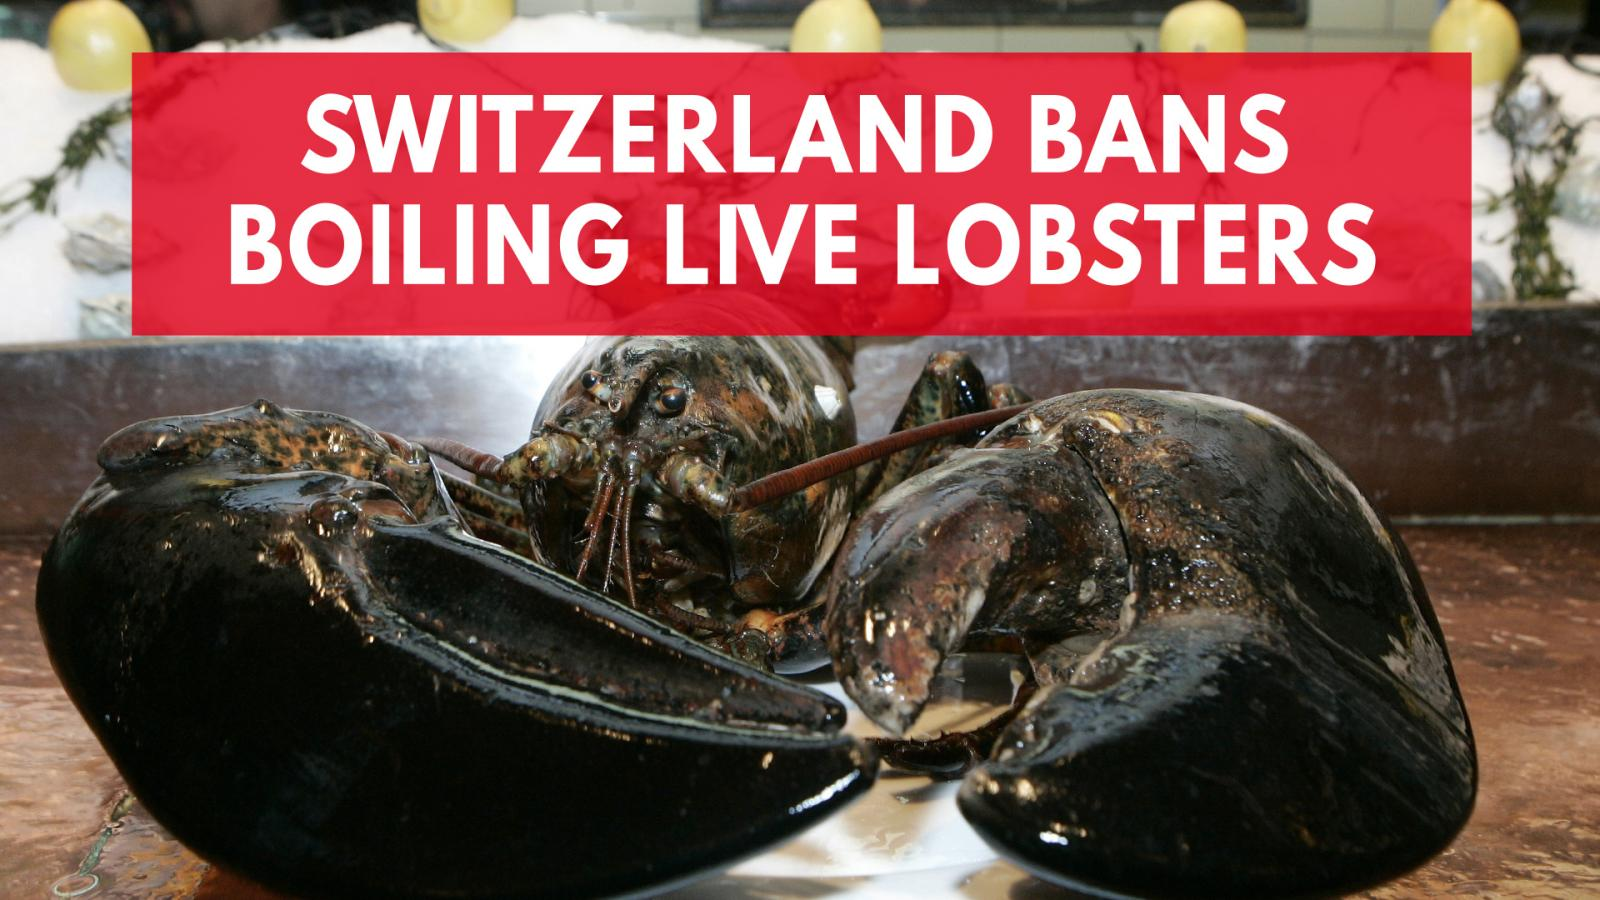 switzerland-bans-citizens-from-boiling-lobsters-alive